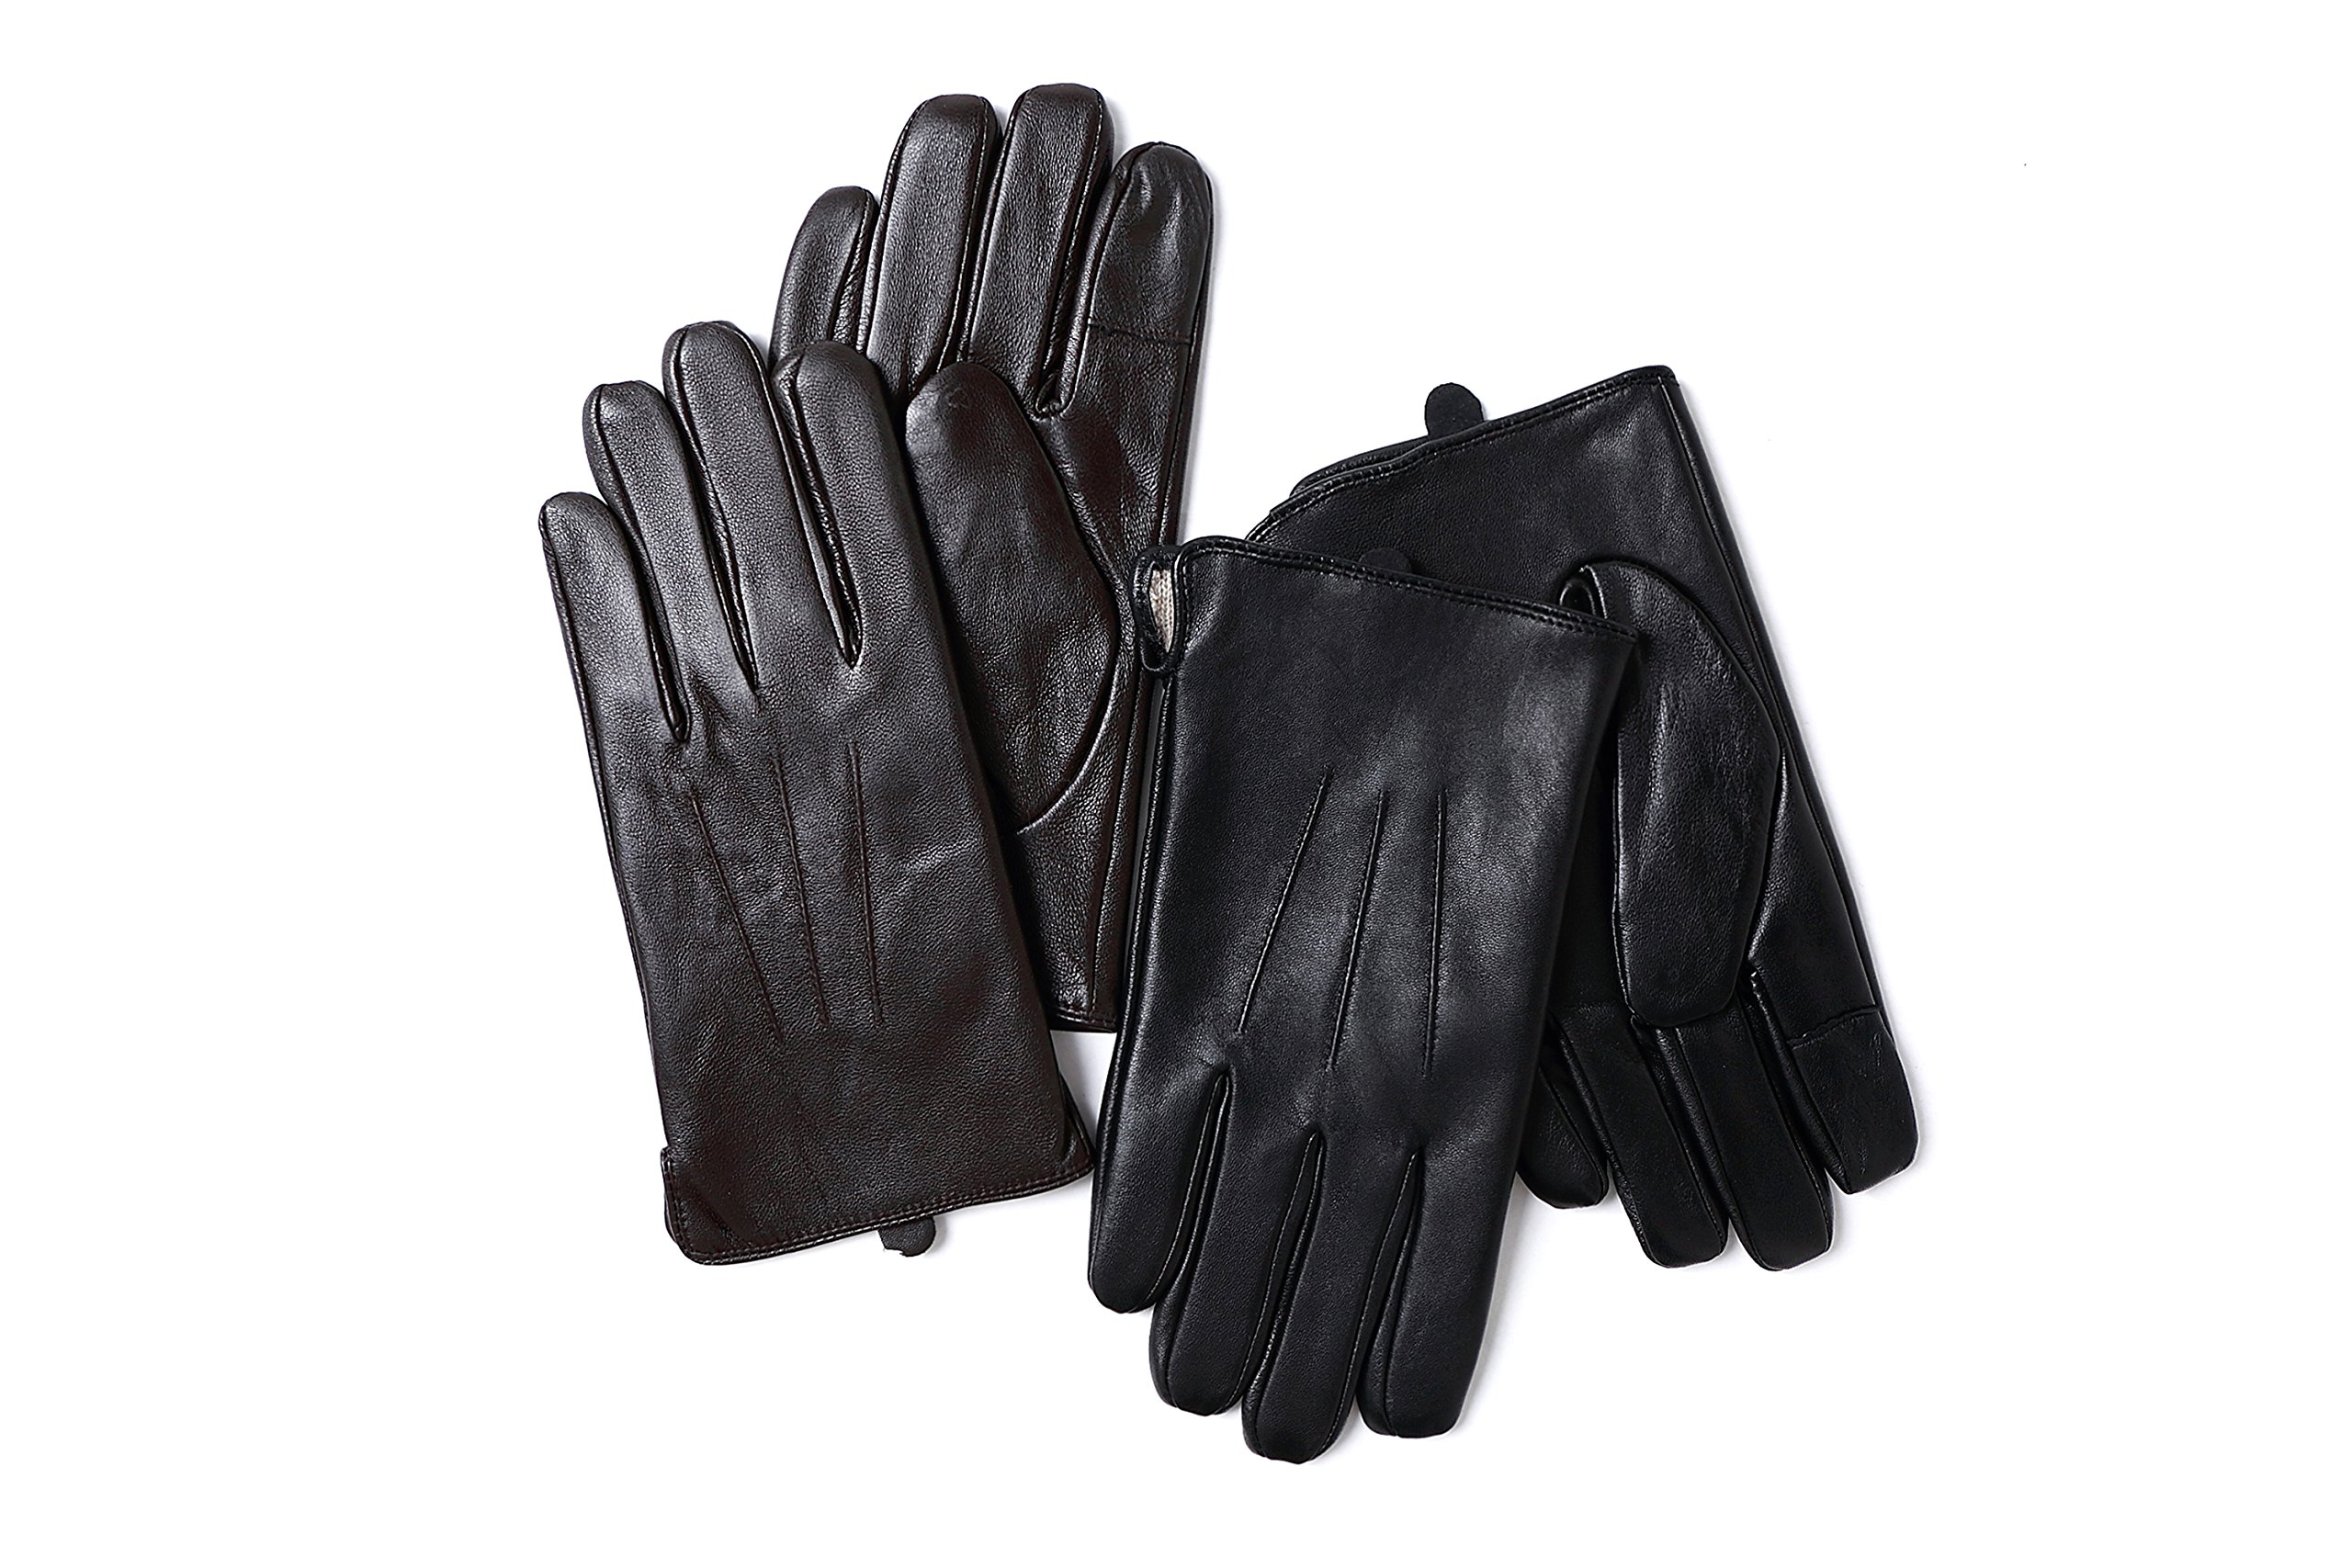 YISEVEN Men's Sheepskin Leather Gloves Three Points Wool Lined Real Luxury Design Soft Hand Warm Fur Heated Lining for Winter Stylish Dress Work Xmas Gift and Motorcycle Driving, Brown 095/Large by YISEVEN (Image #6)